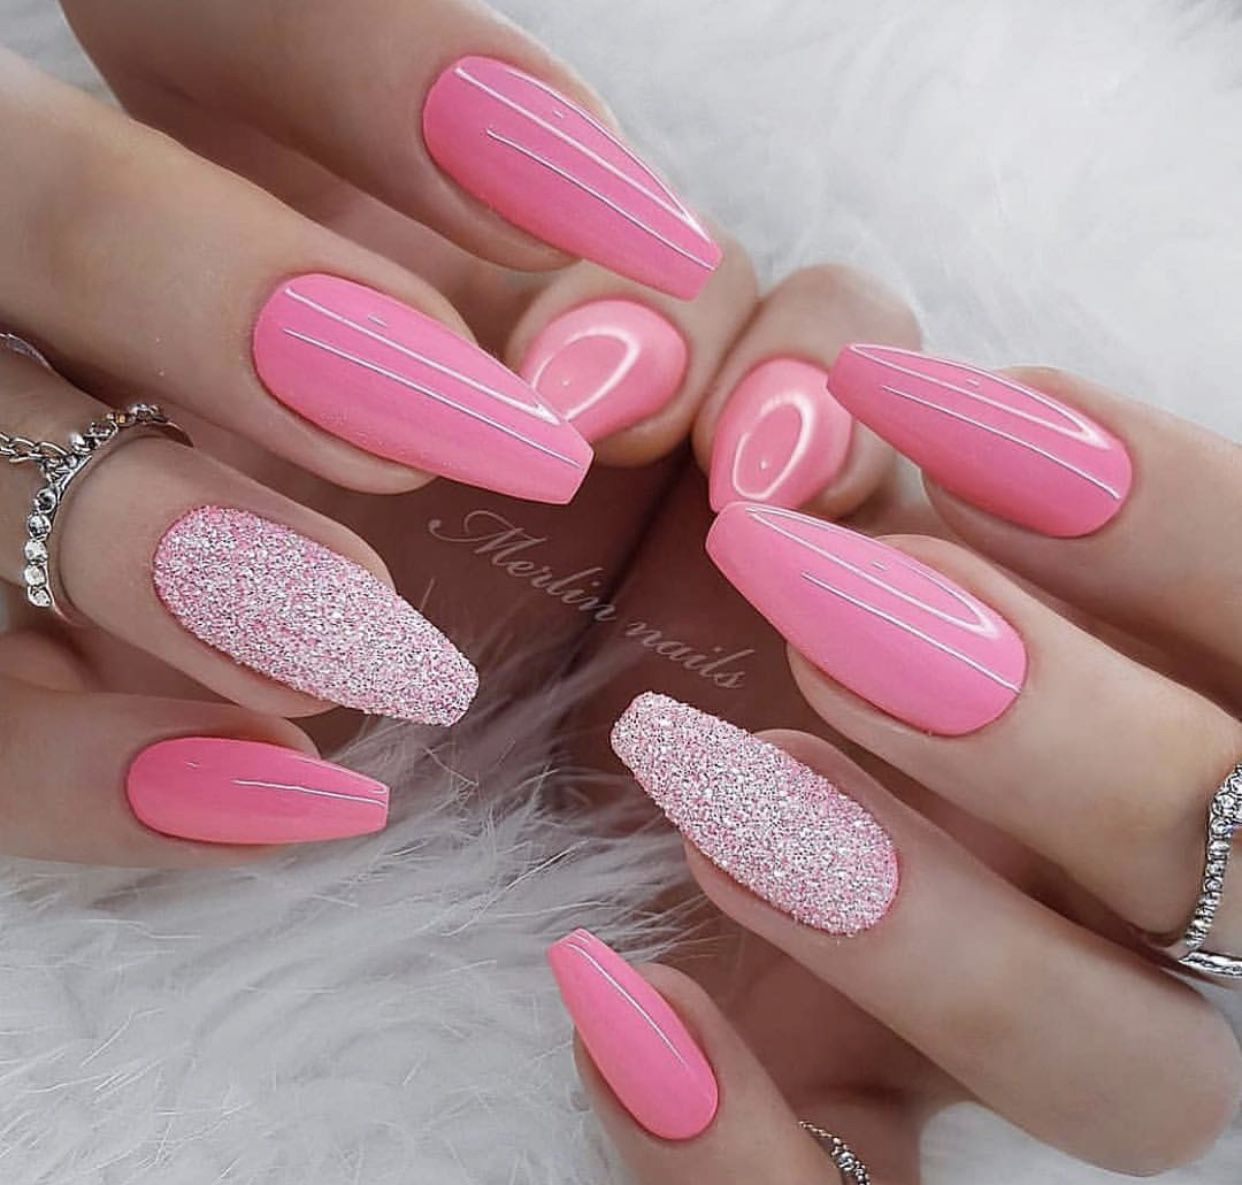 Pink Nails With Glitter Accents For Spring And Summer Pink Nails Coffin Nails Designs Summer Nails